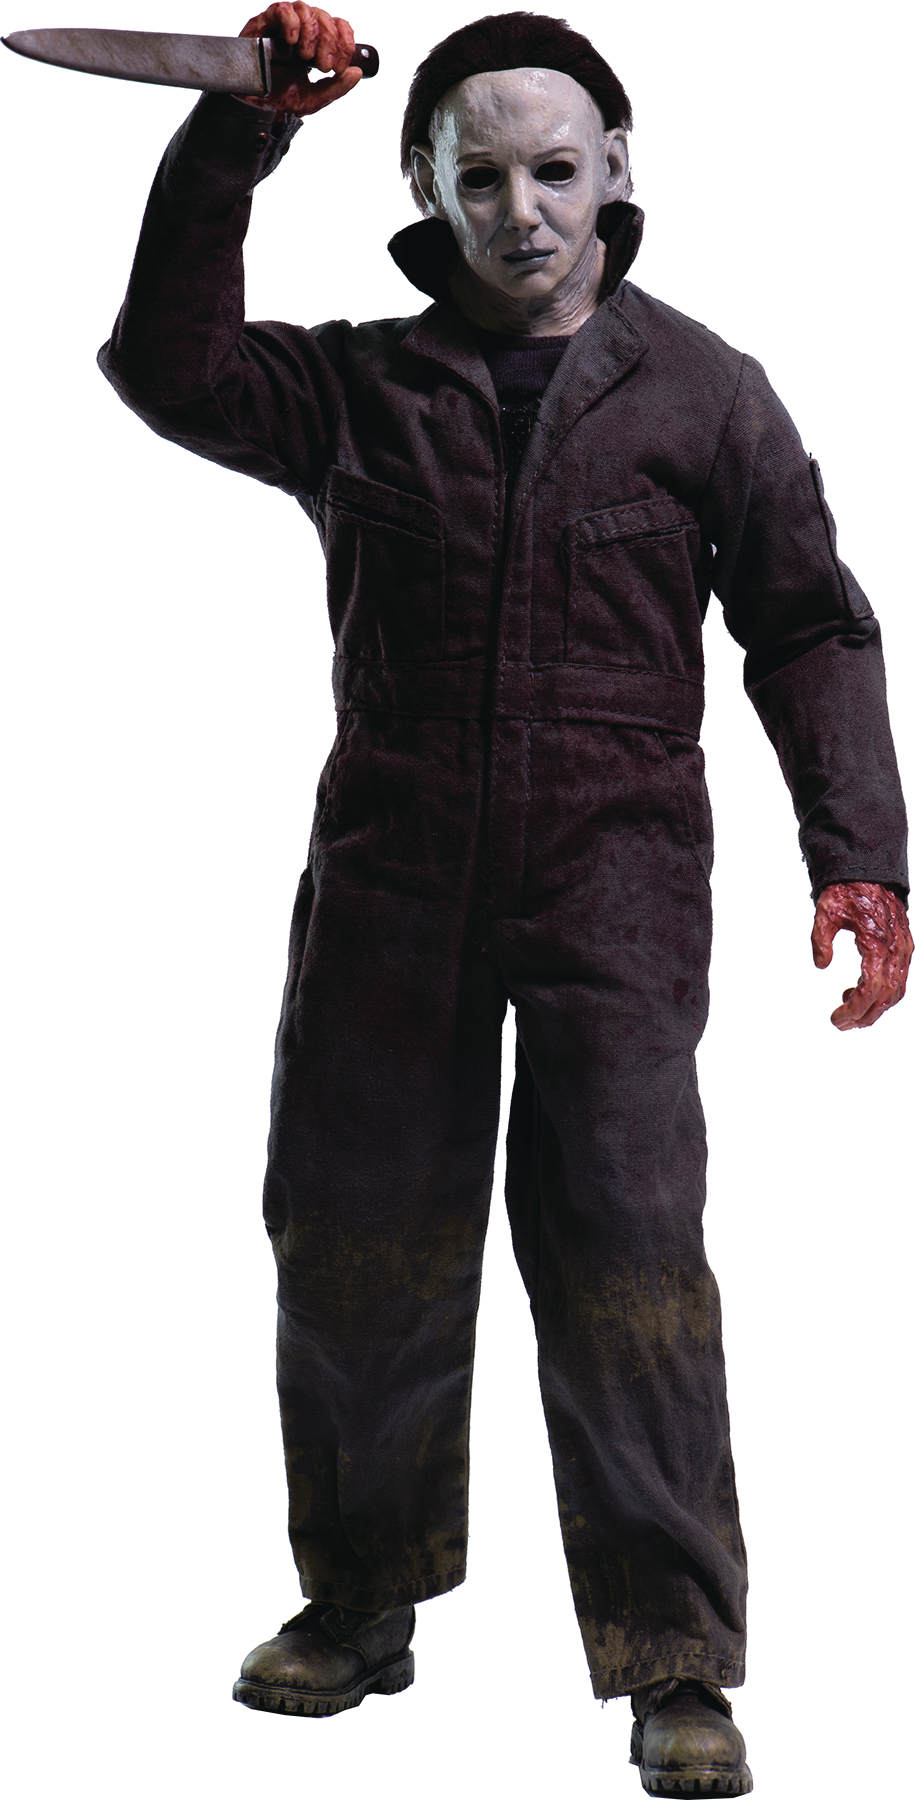 HALLOWEEN 6 CURSE OF MICHAEL MYERS 1/6 SCALE FIG